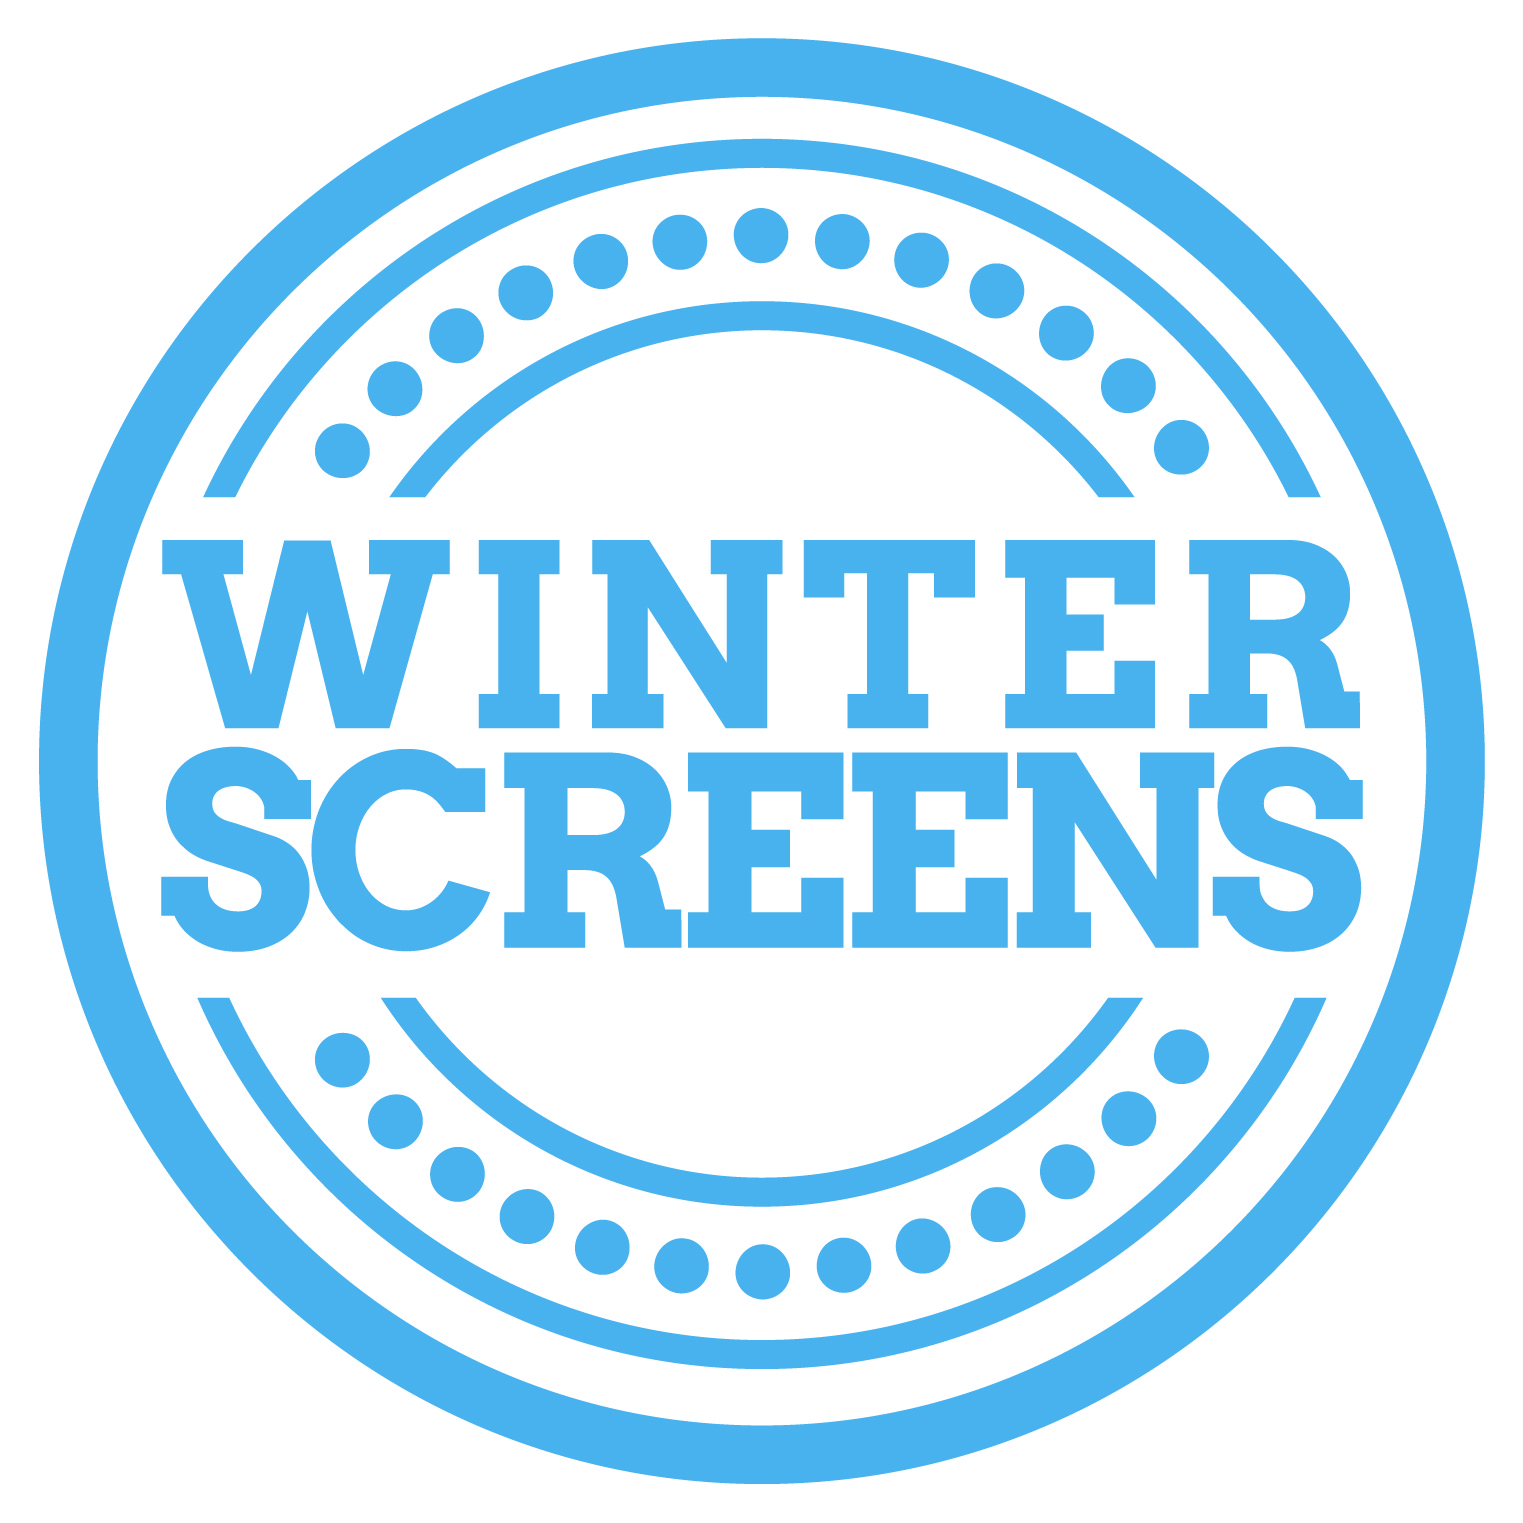 Winter Screens Christmas Cinema